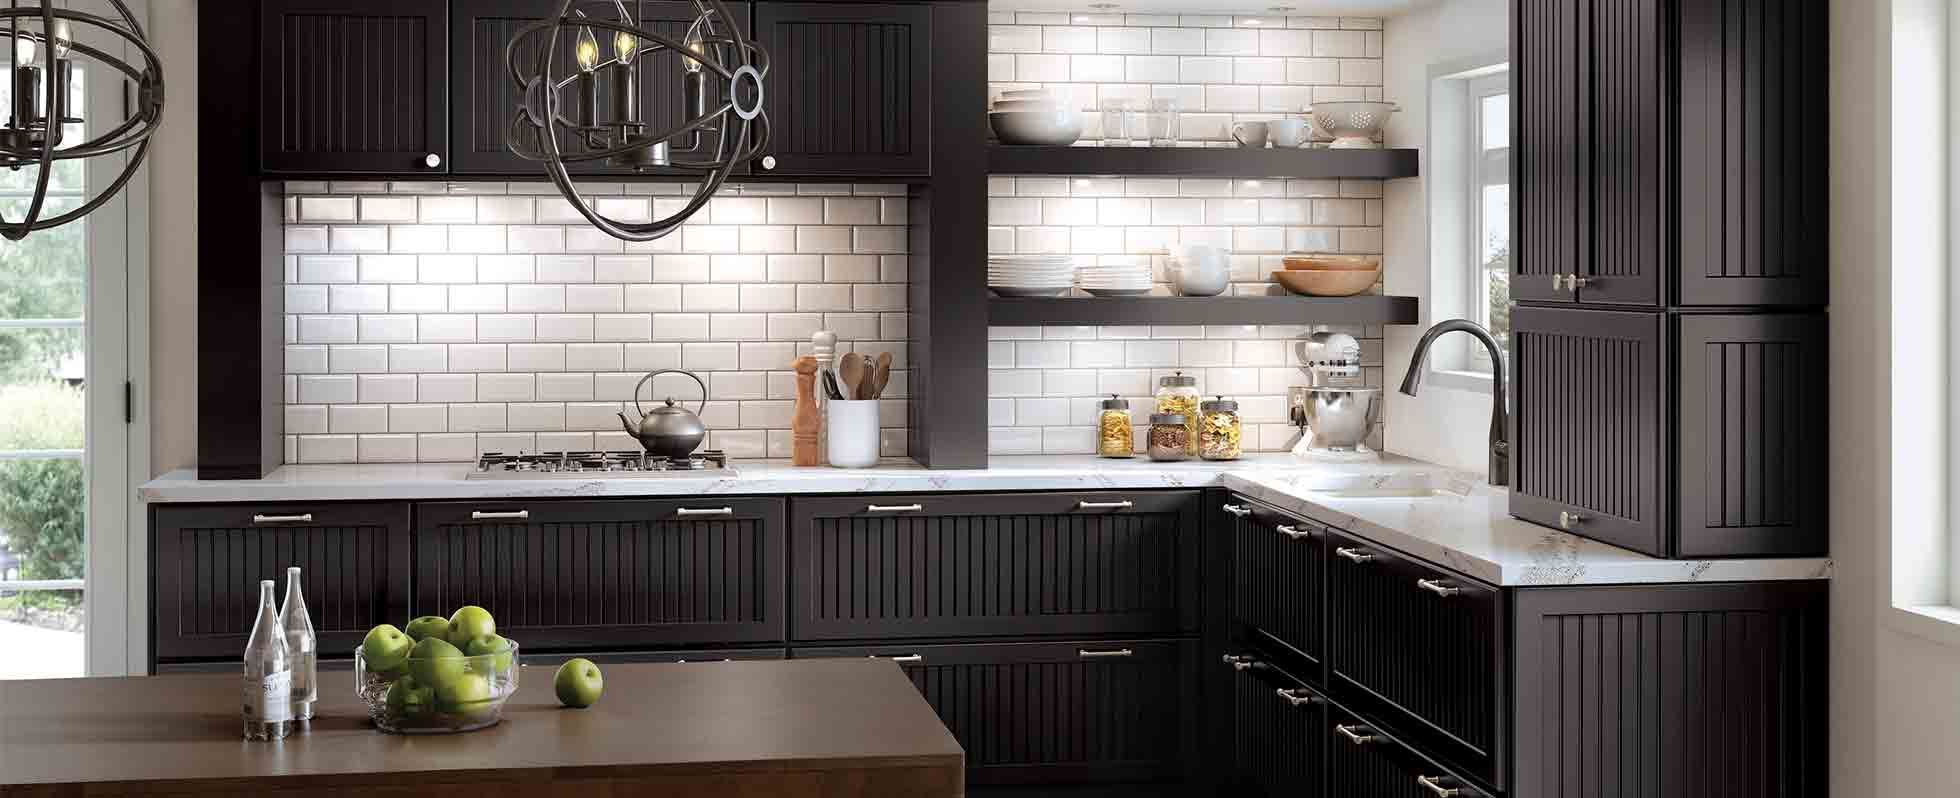 10 Best Kitchen Cabinet Makers And Retailers In 2020 Best Kitchen Cabinets Kitchen Cabinet Makers Framed Kitchen Cabinets